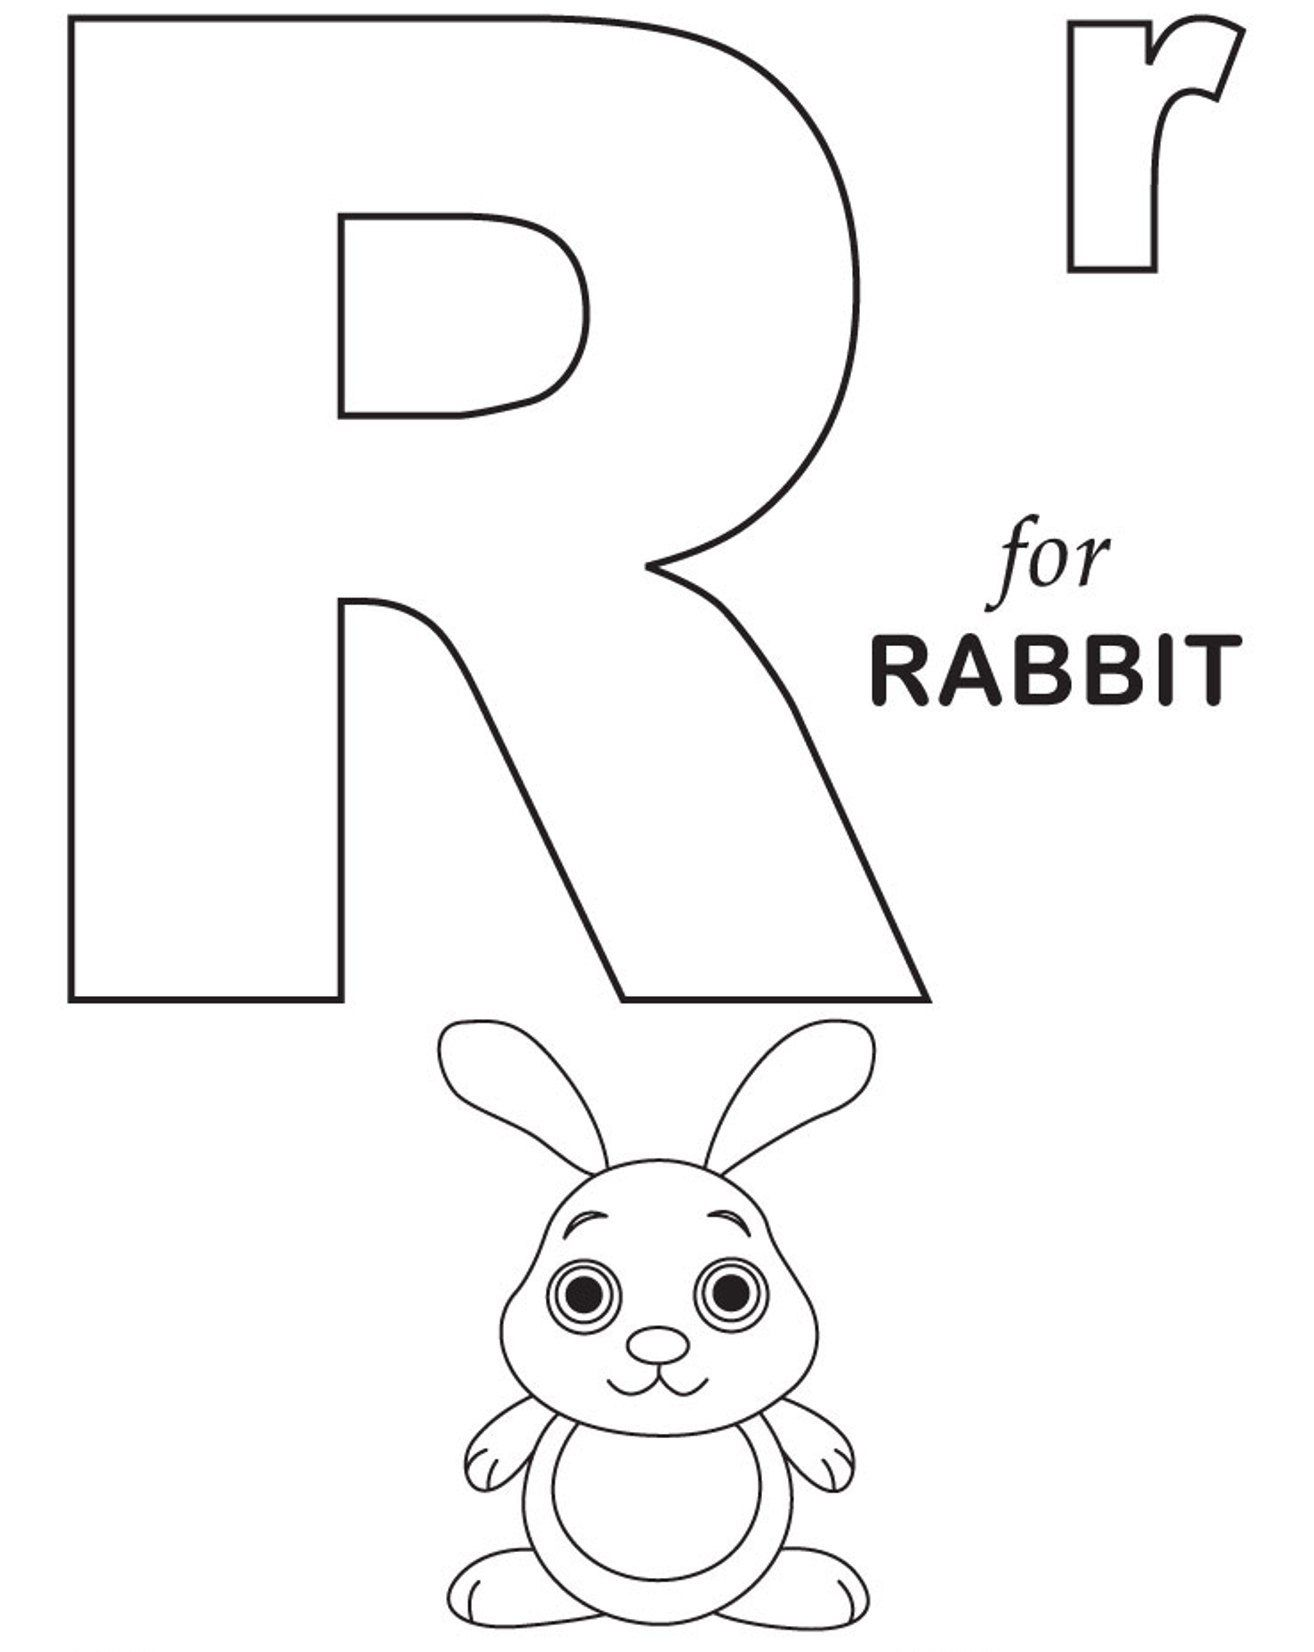 R For Rabbit Free Alphabet Coloring Pages Alphabet Coloring